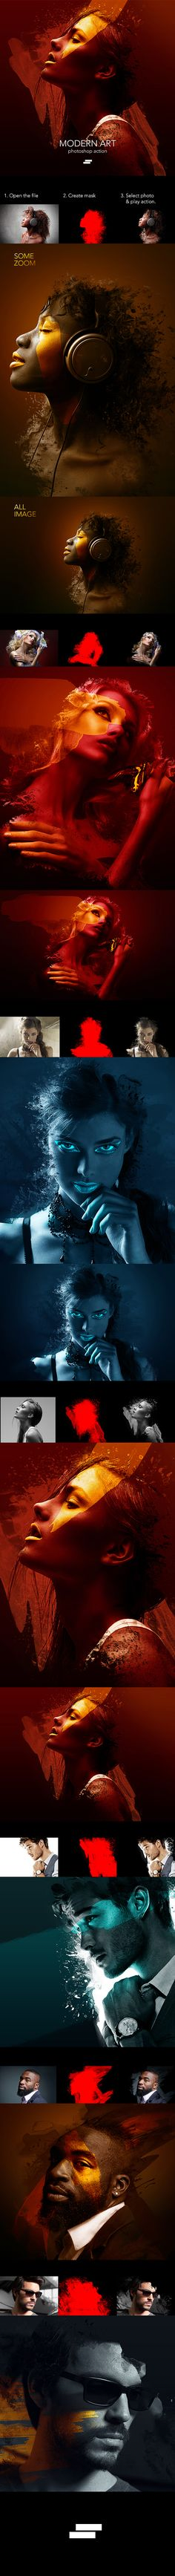 Modern Art Photoshop Action - Photo Effects Actions